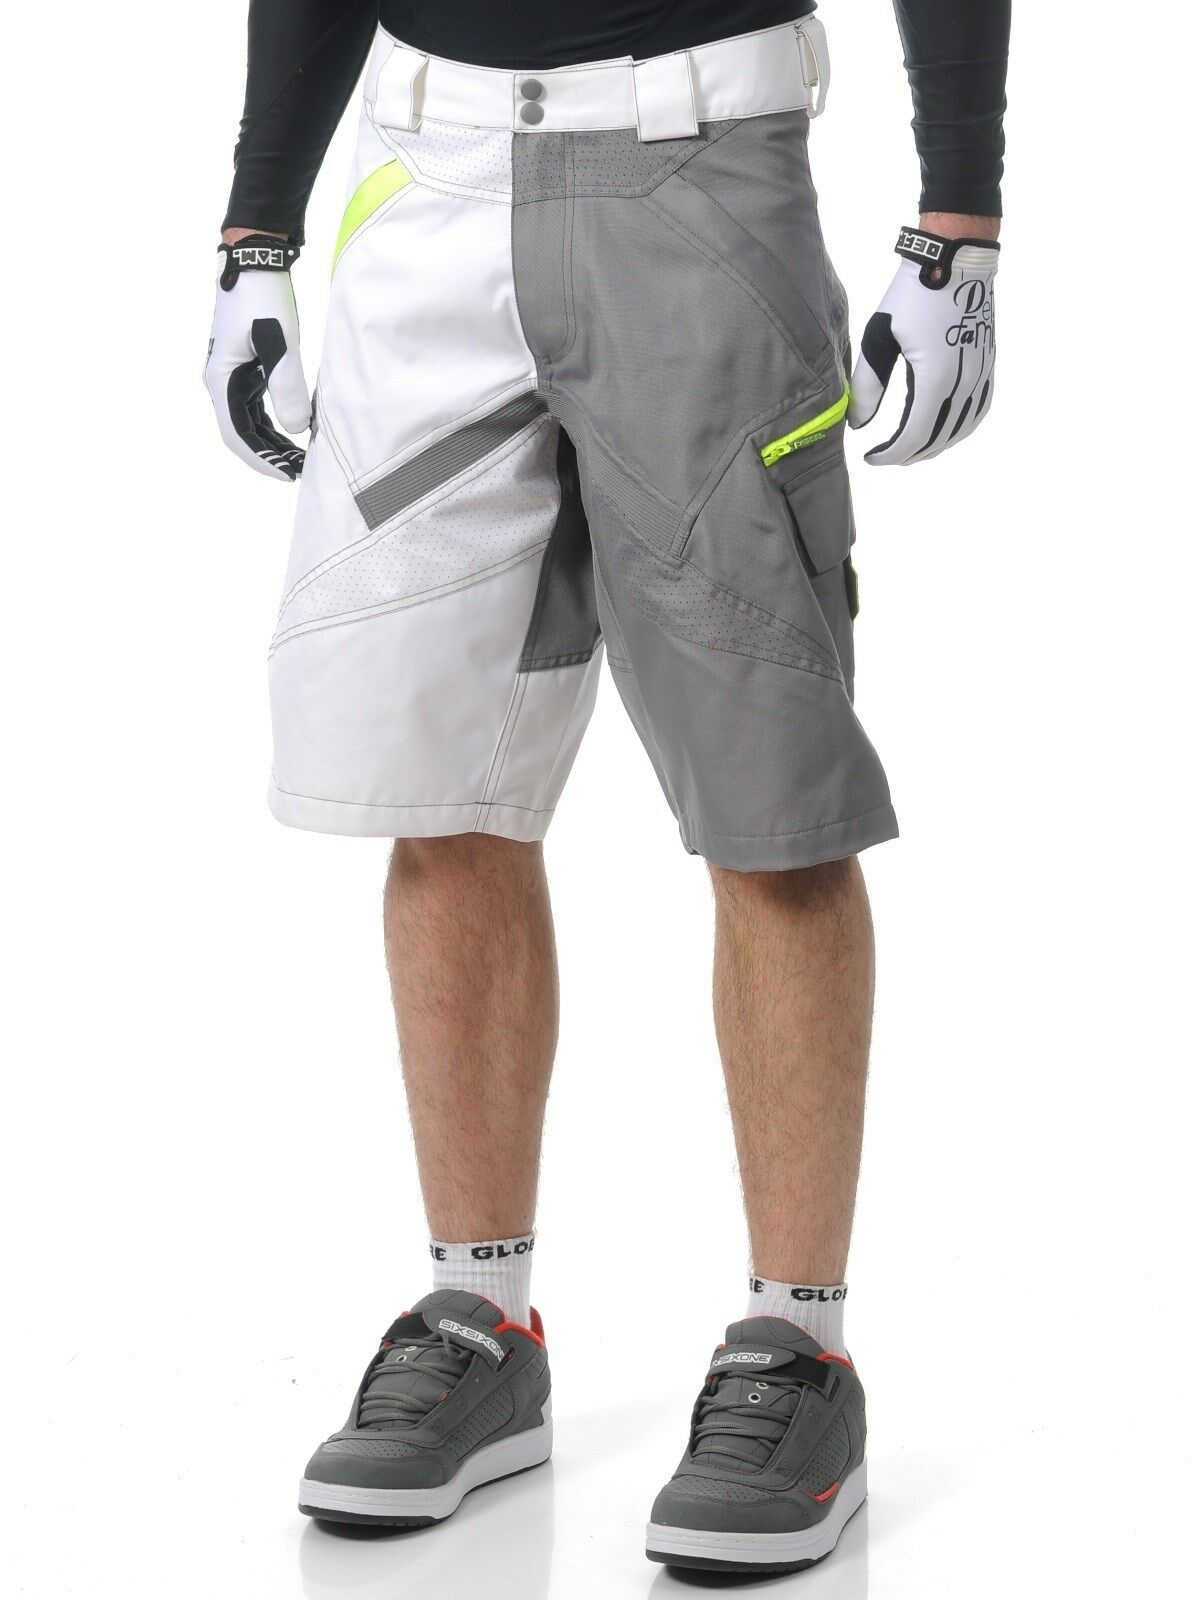 O'Neal MTB Stormrider Heavy Duty Durable Fabric Men Cycling Short grigio bianca 34